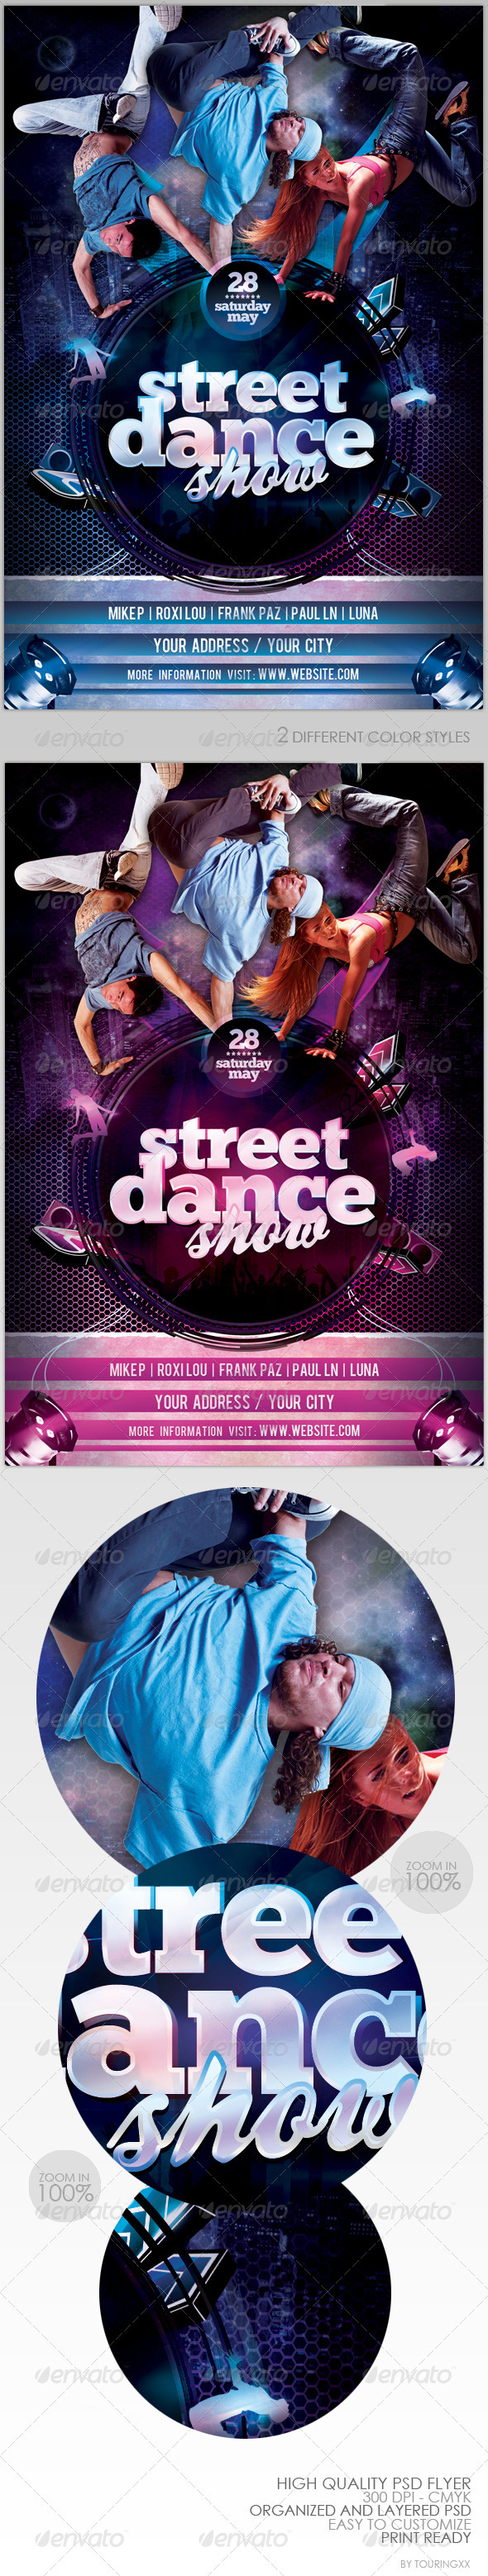 Street Dance Show Flyer Template GraphicRiver - Print Templates -  Flyers 2393428